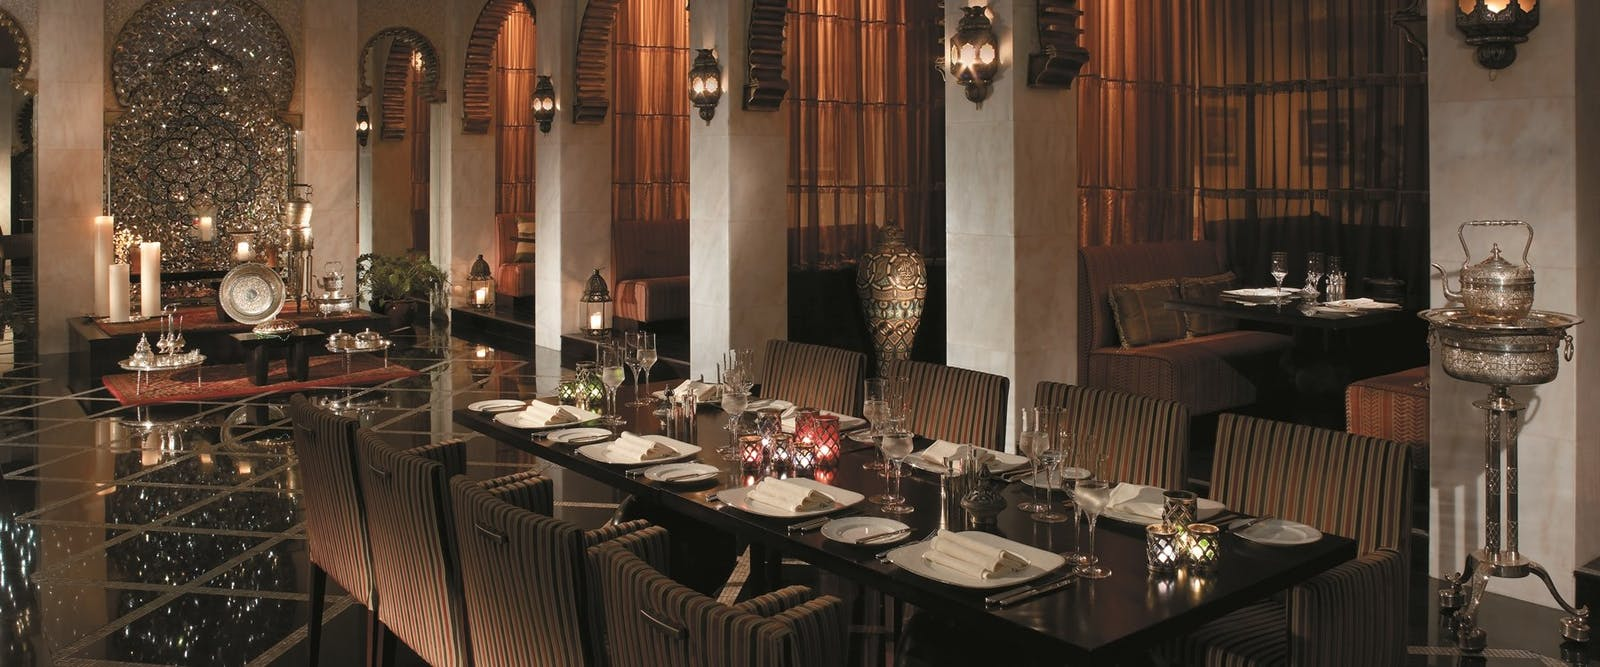 Shahrazard Morocco restaurant at Shangri-La's Al Husn Resort & Spa